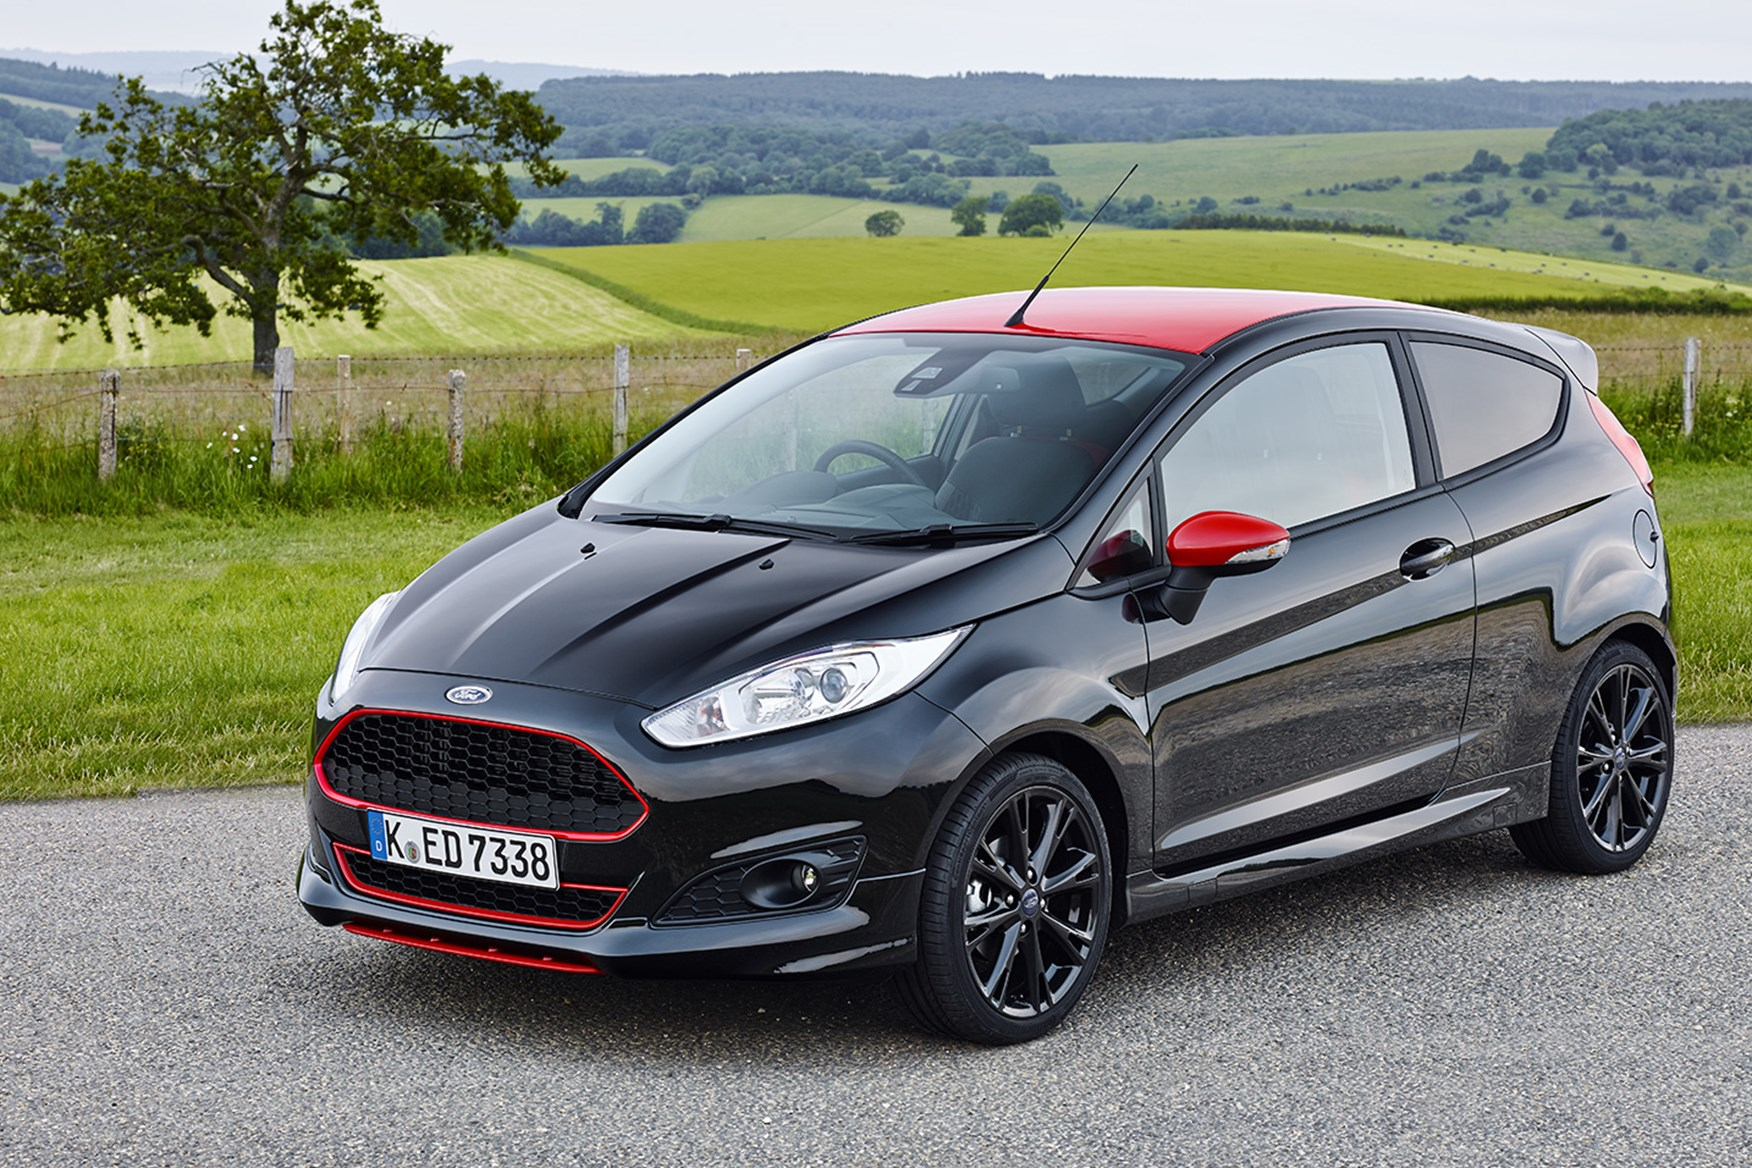 All Black Ford Fiesta Ford Fiesta 1 Ecoboost 140ps St Line Black Edition 2016